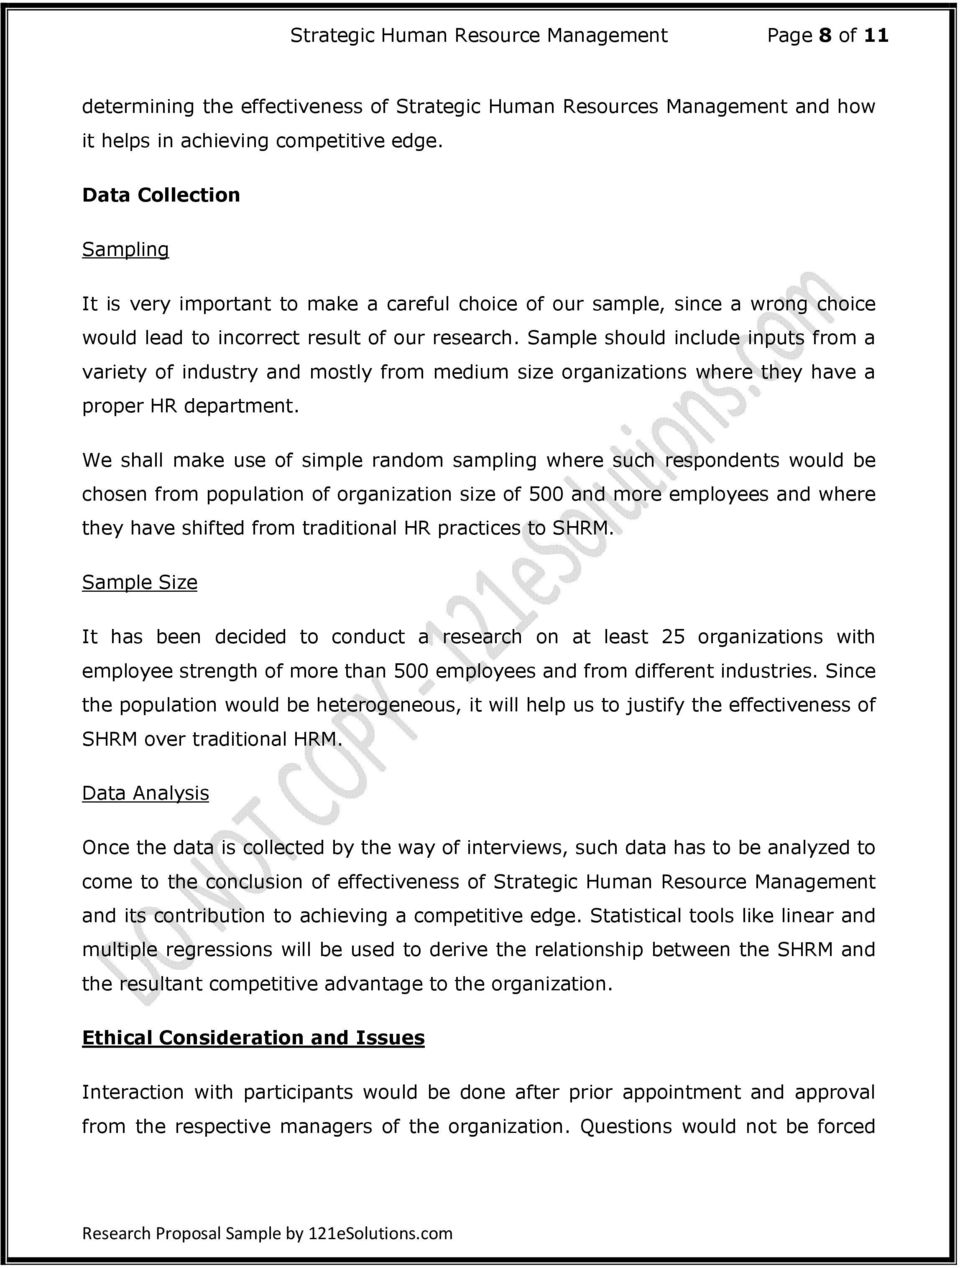 Research Proposal on Strategic Human Resource Management - PDF